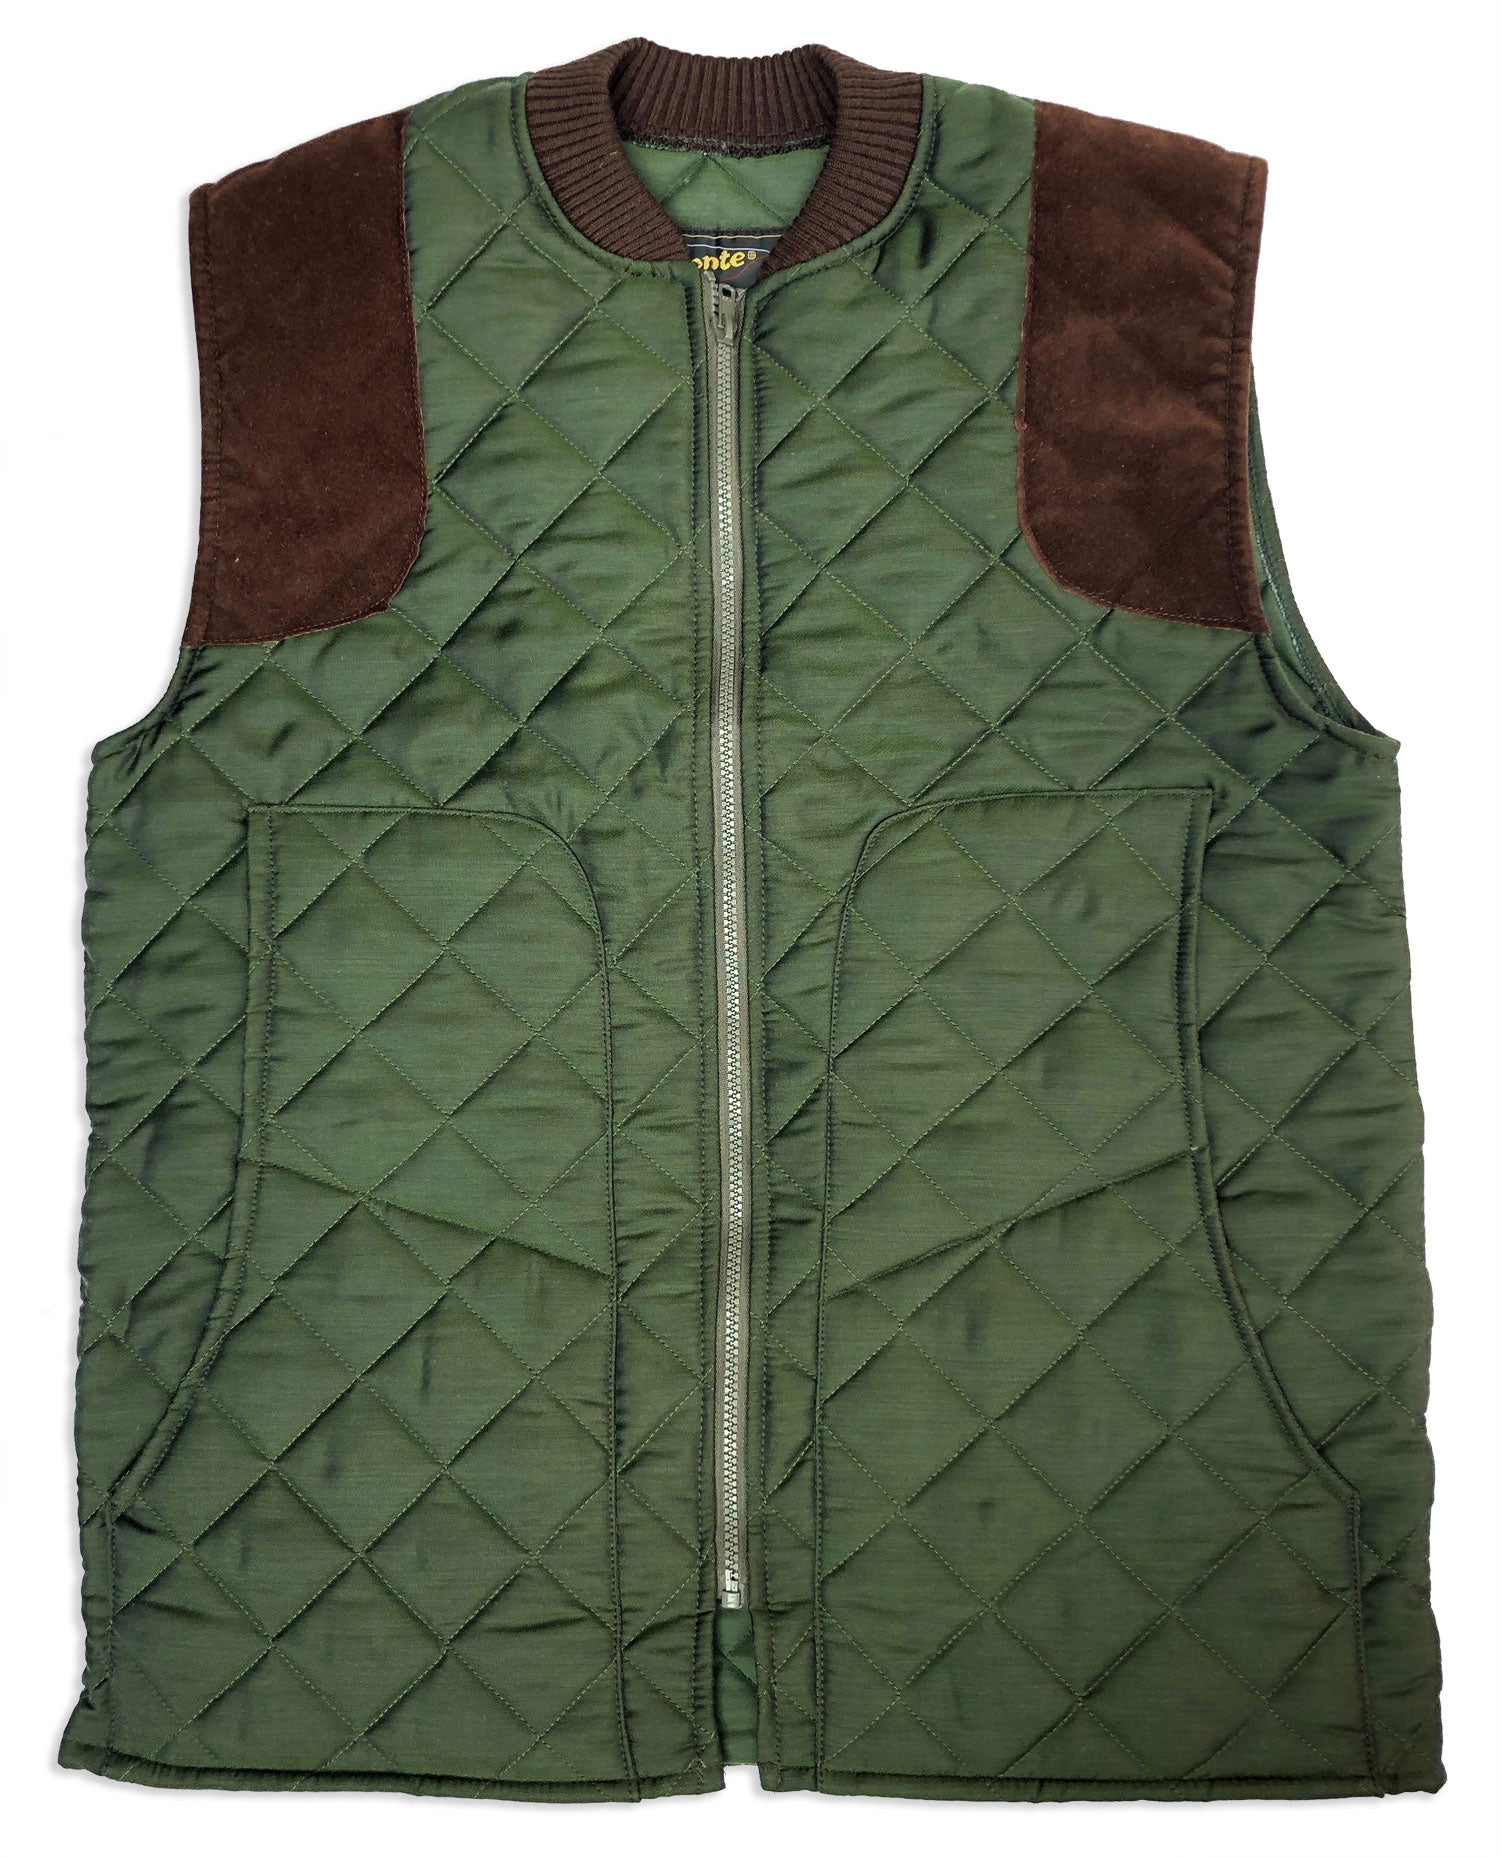 40d48c5fd9906 Bronte Quilted Shooting Waistcoat in green with shoulder protectors